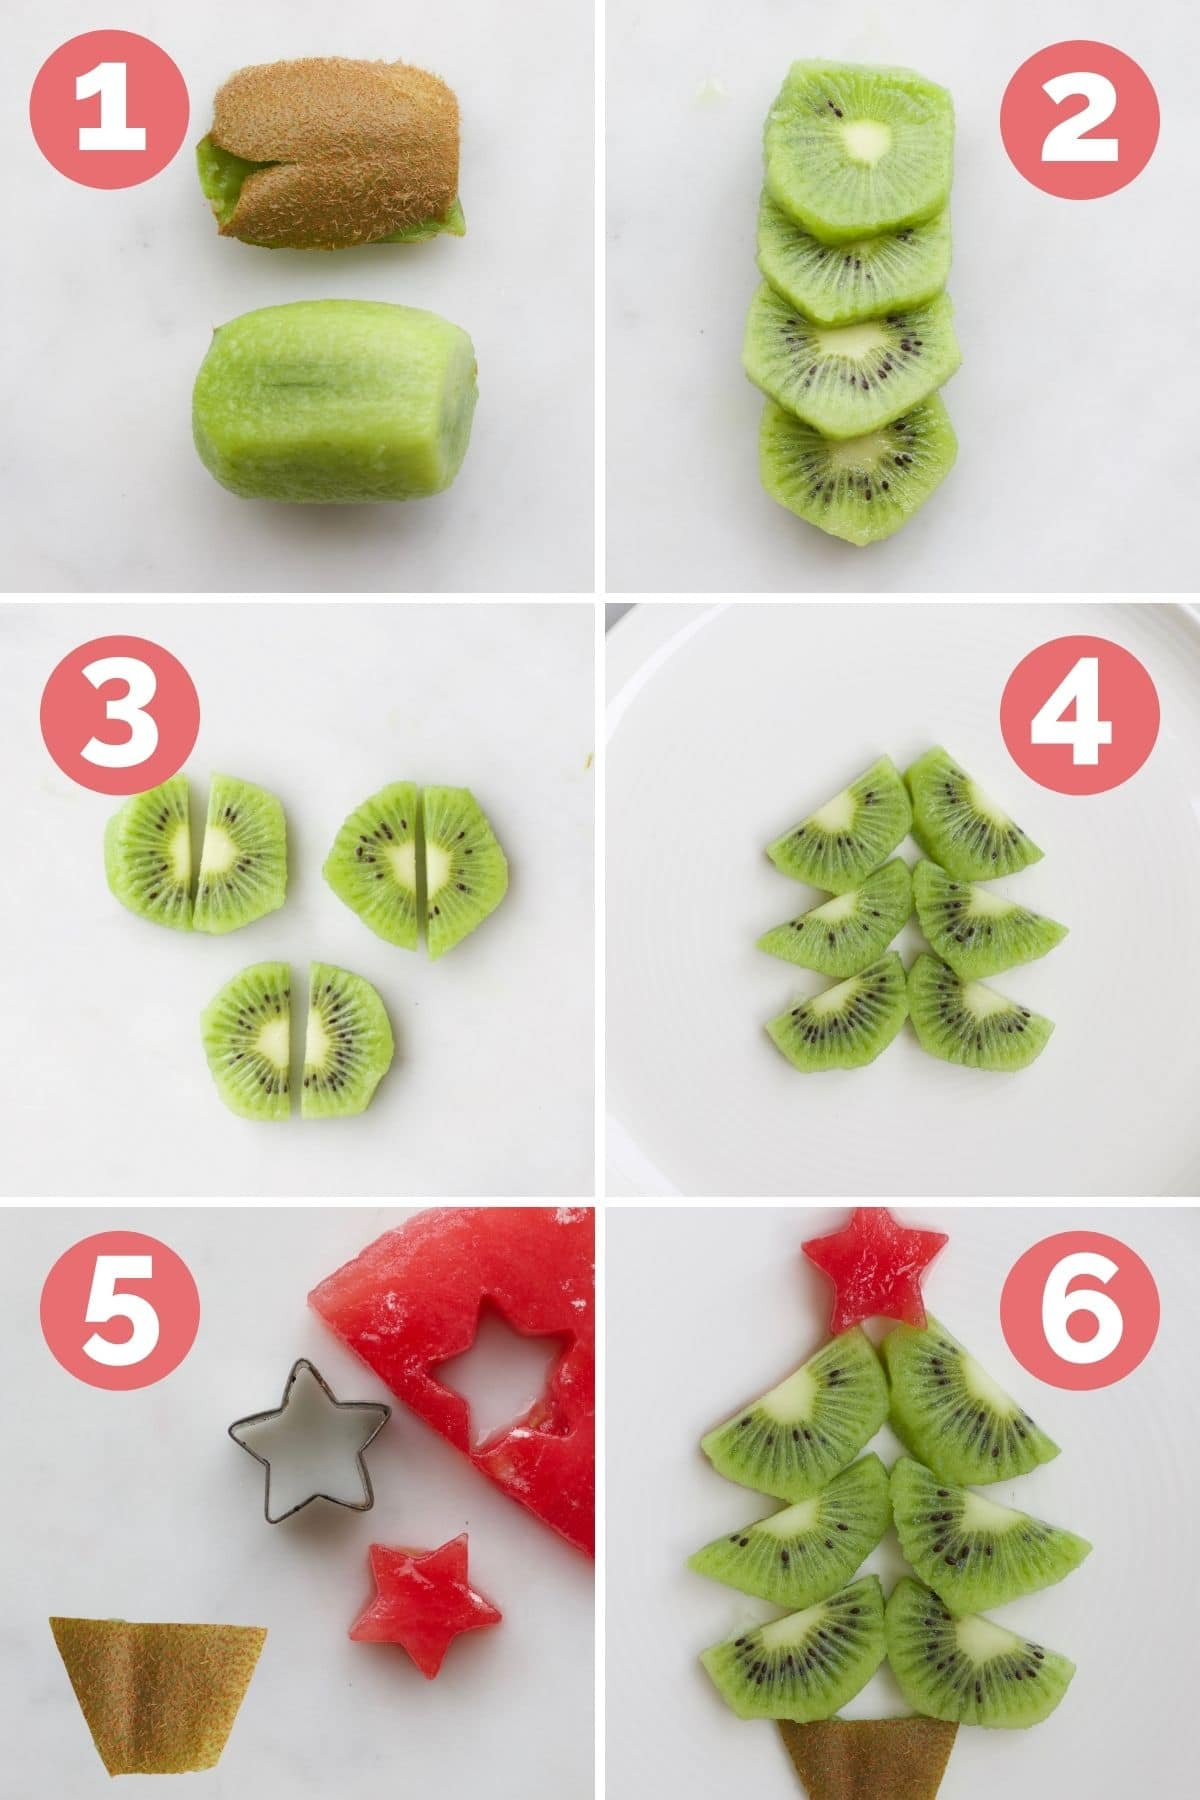 Collage of 6 Images Showing the Process Steps to Making Kiwi Christmas Tree